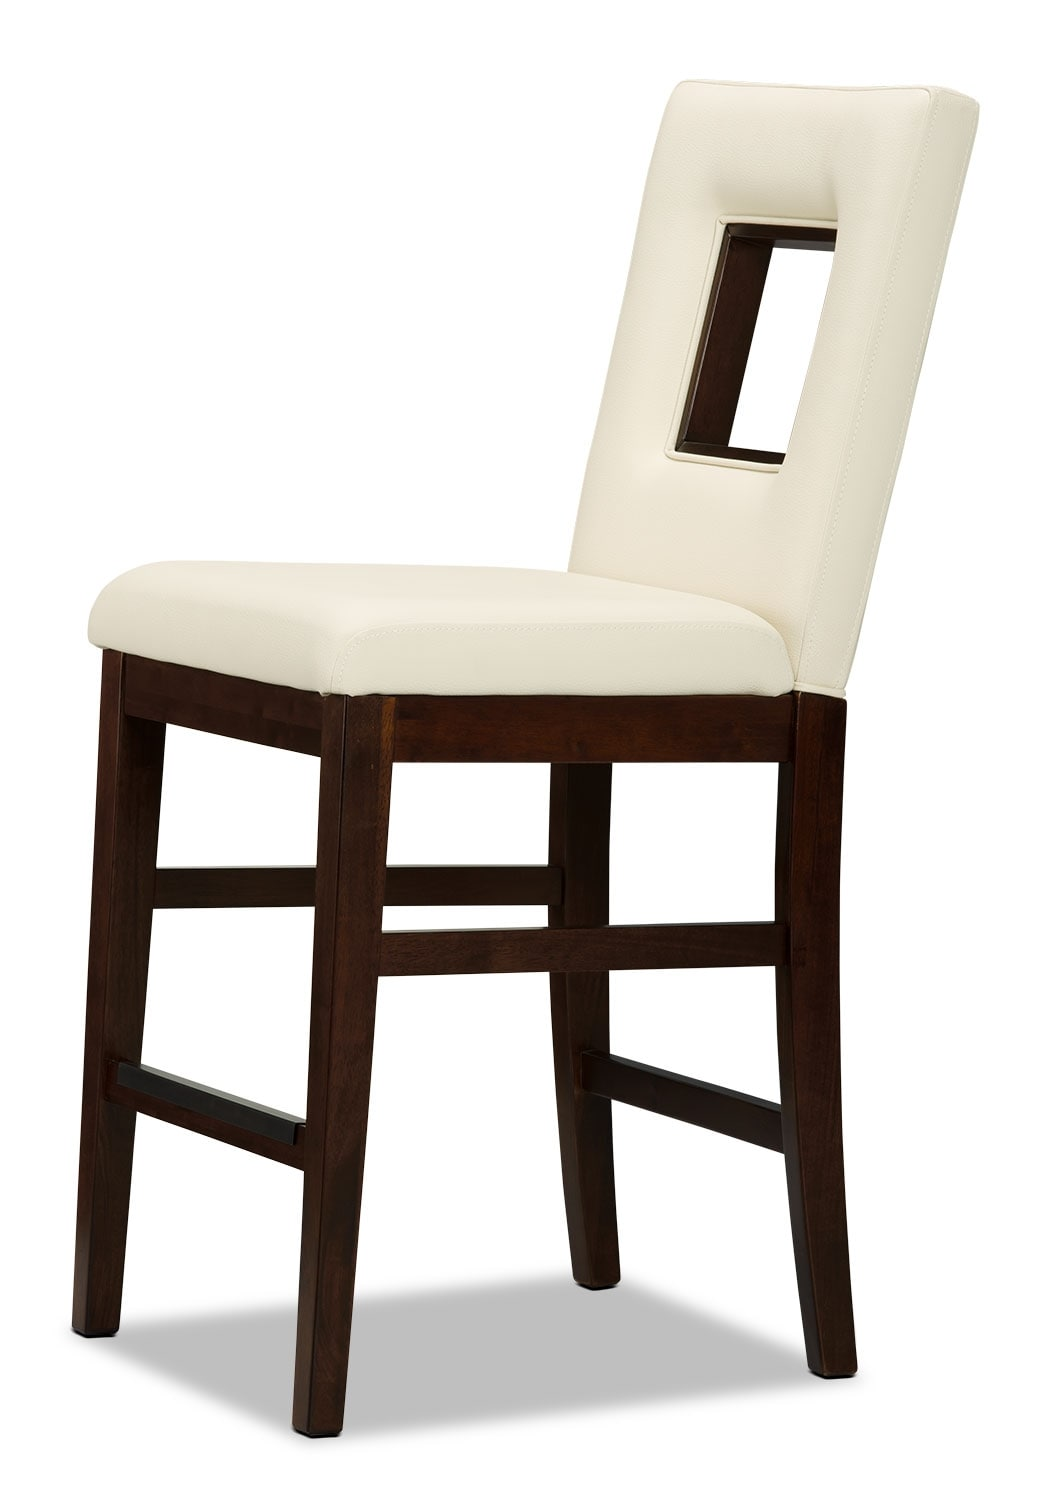 Counter Height Chairs Enzo Counter Height Dining Chair The Brick